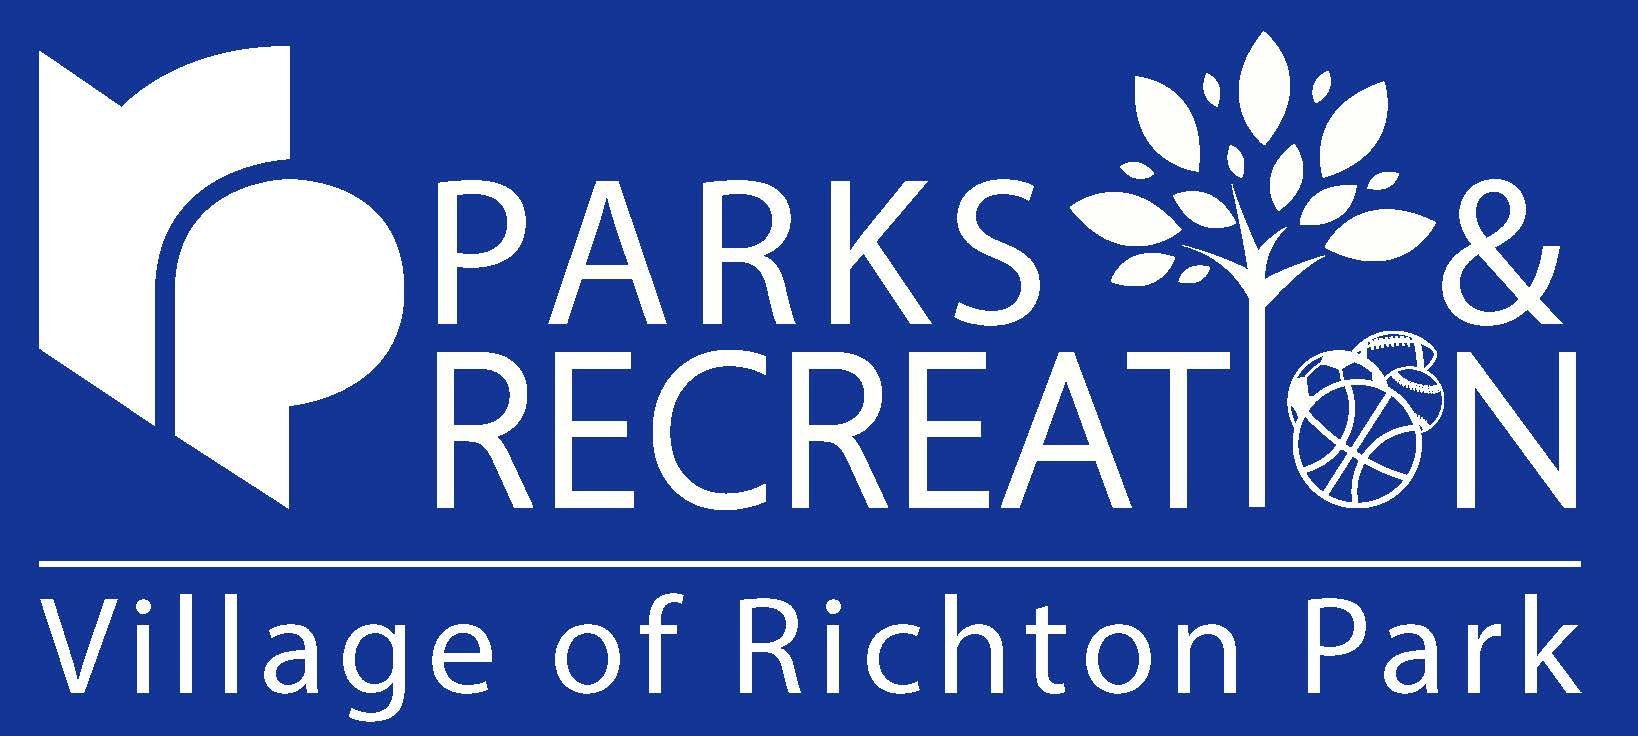 Richton Parks and Recreation SOLID BLUE Logo_HORIZONTAL_REV9-30-16 (2).jpg